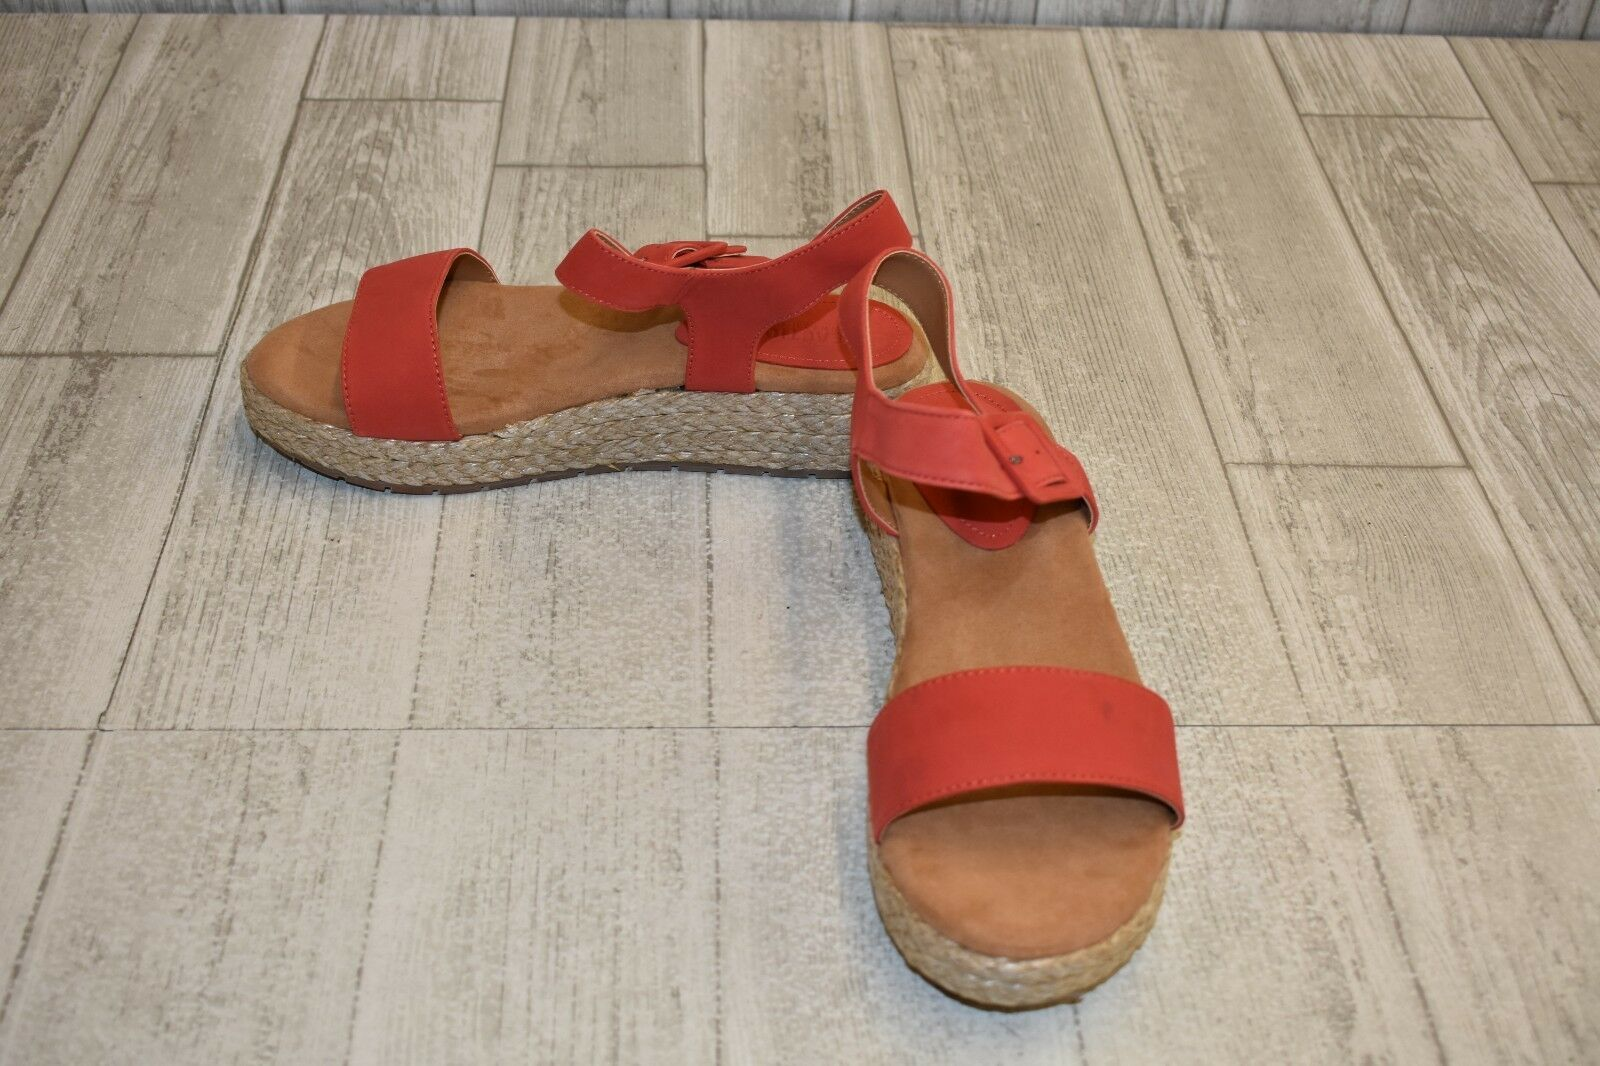 Kenneth Cole Reaction Calm Water Sandal - Women's Size 9M - Red Brown